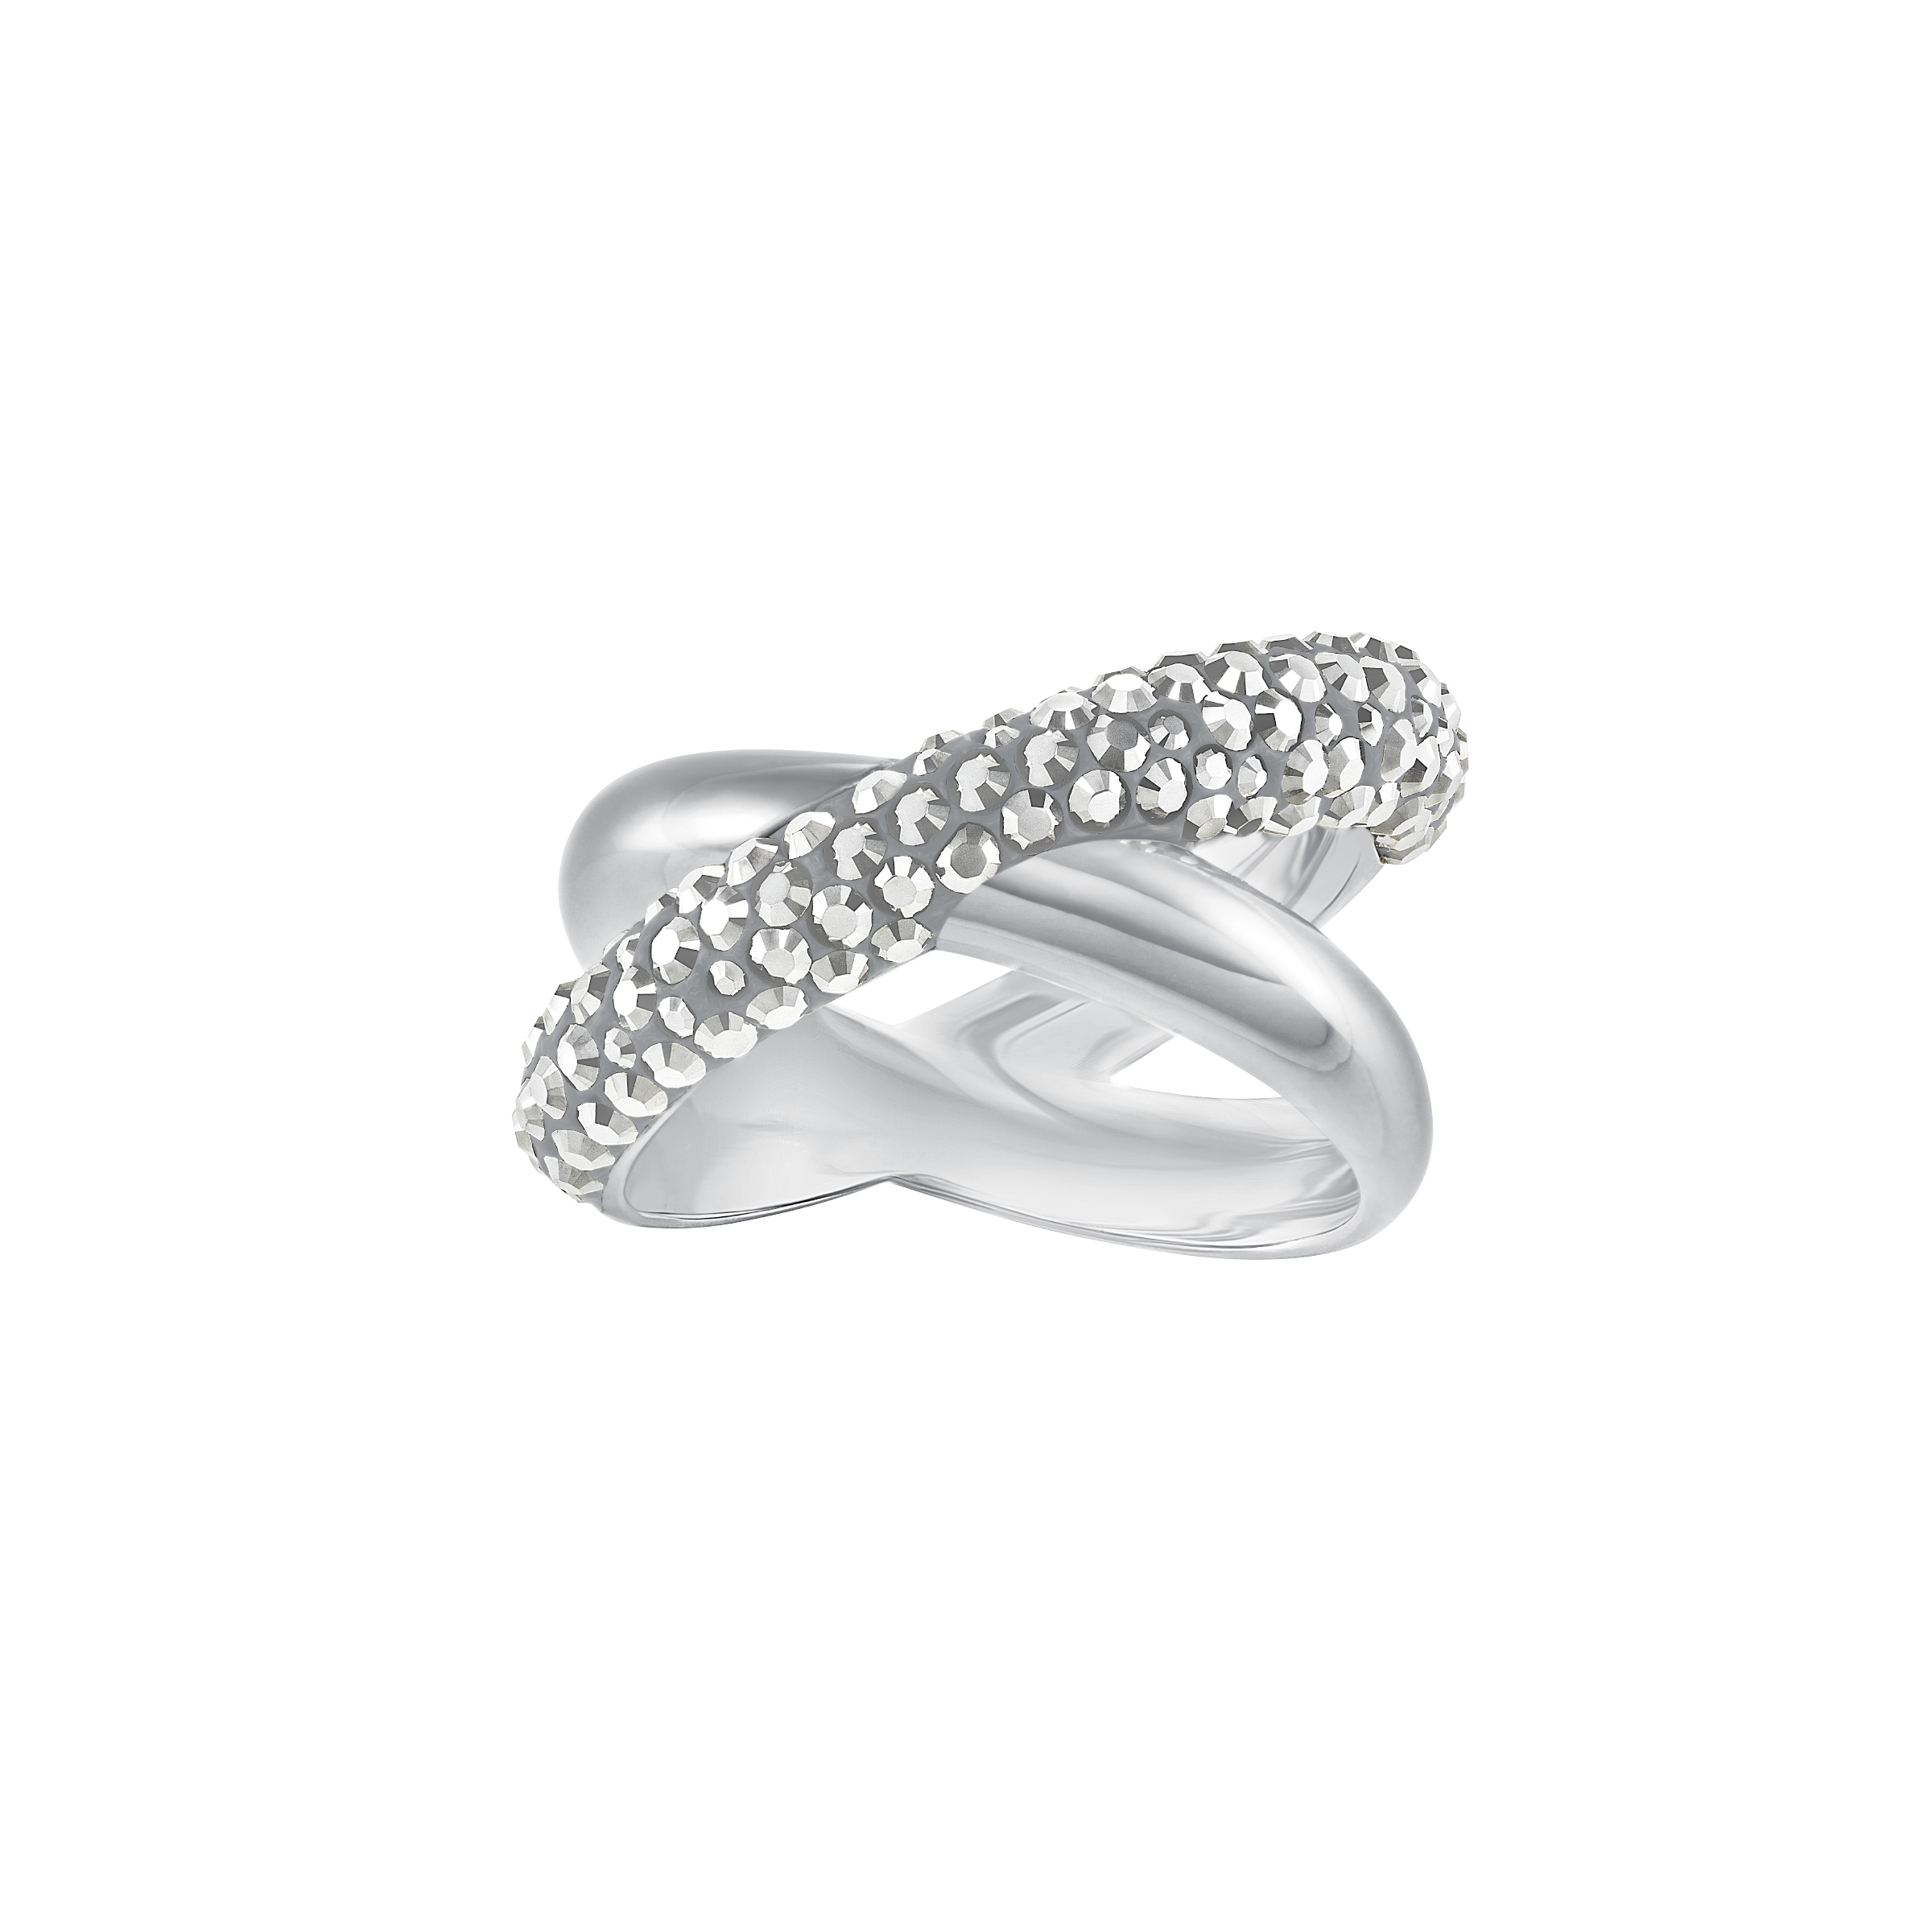 Crystaldust Cross Ring, Gray, Palladium plating